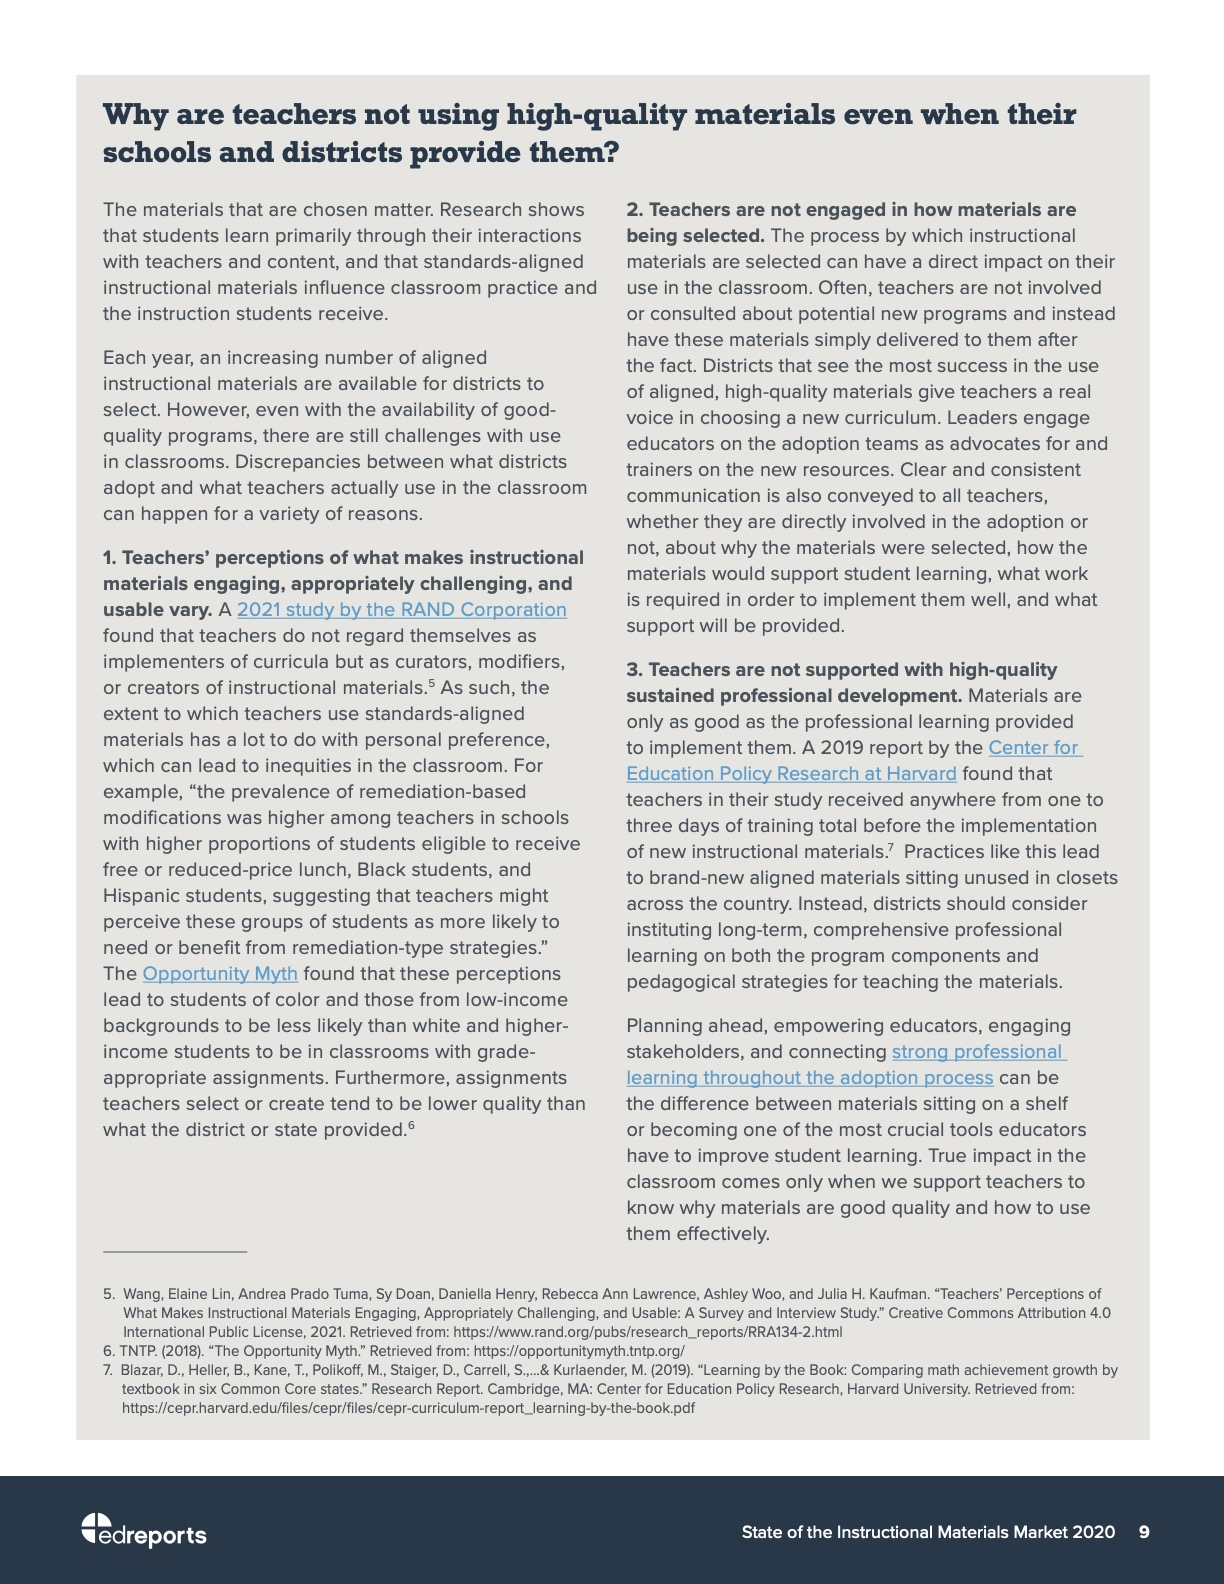 EdReports-2020-State-of-the-Market-Use-of-Aligned-Materials_FIN_9.jpg